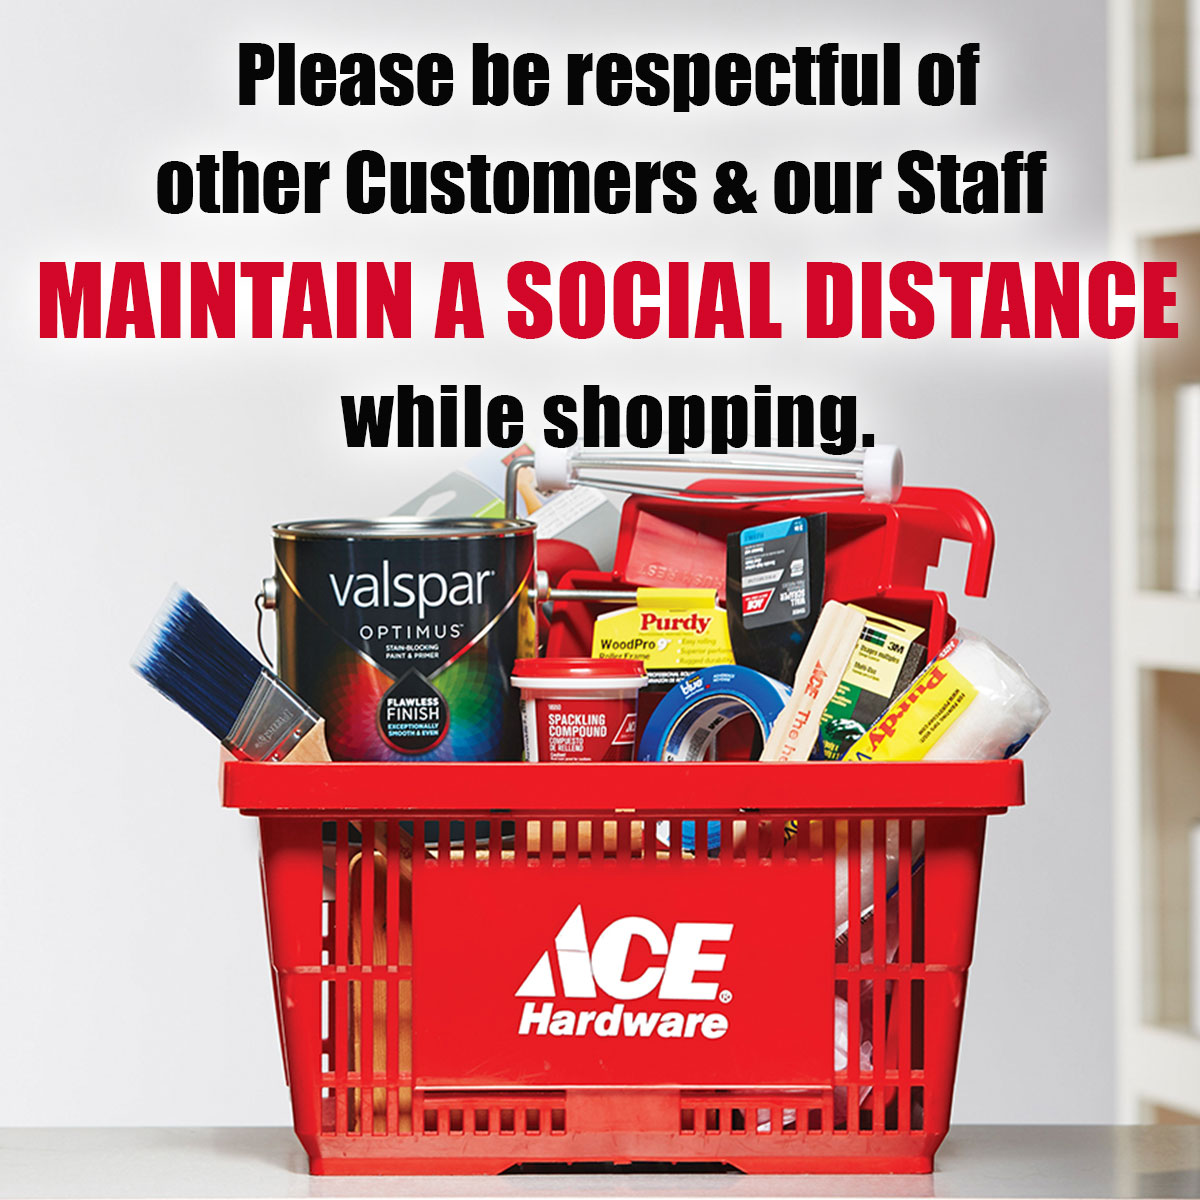 HCL is open, Please maintain a social distance from other customers and HCL staff while shopping.